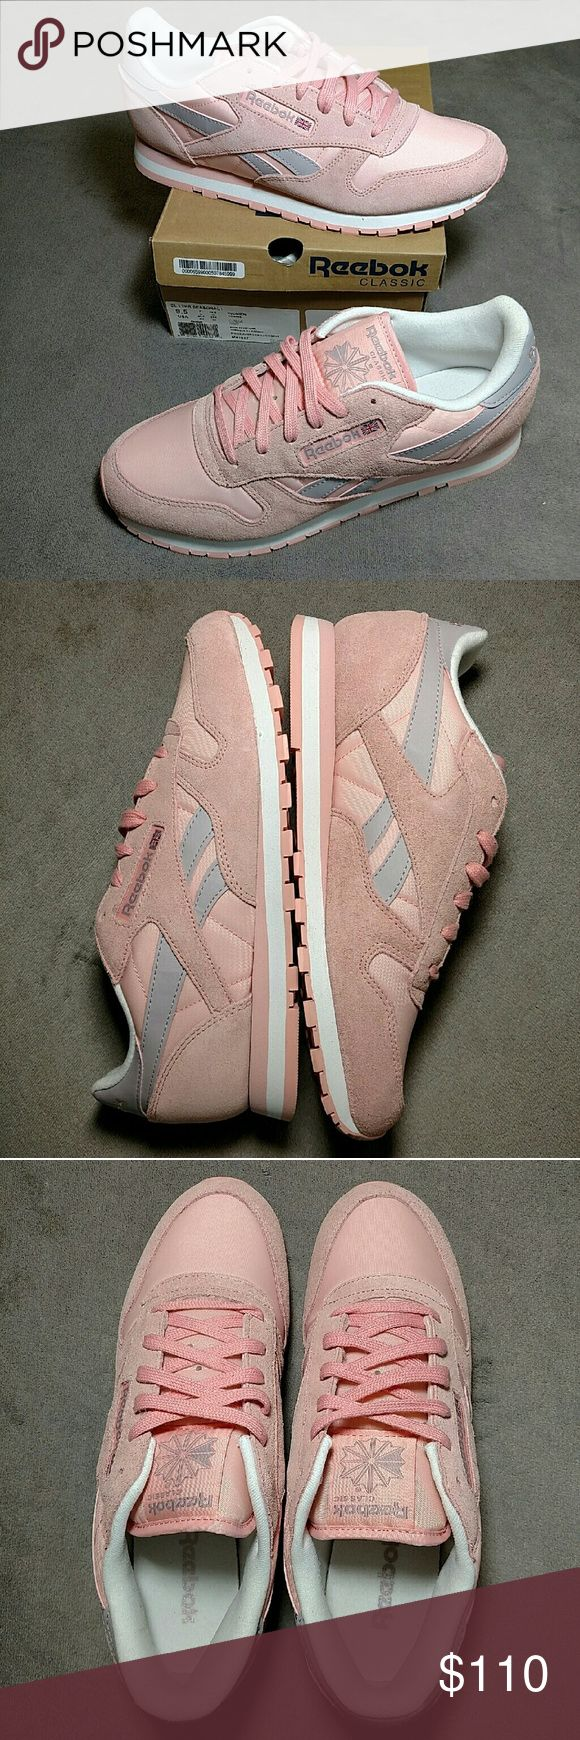 "Reebok Classic Leather Seasonal size 9.5 FOR SALE: Reebok Classic Leather Seasonal 1 in women's US 9.5 (UK 7, EUR 40.5), which is equivalent to a men's US 8.  The colorway is pink, ""lavender luck"", and white.  This shoe is totally brand new with original laces, insoles, tissue paper, and box.  These are rare and feature a nylon and suede upper. For additional photos check out my I-gram (profile: kevin15776, search for:  #kevinreebokclseason1 ). Reebok Shoes Sneakers"